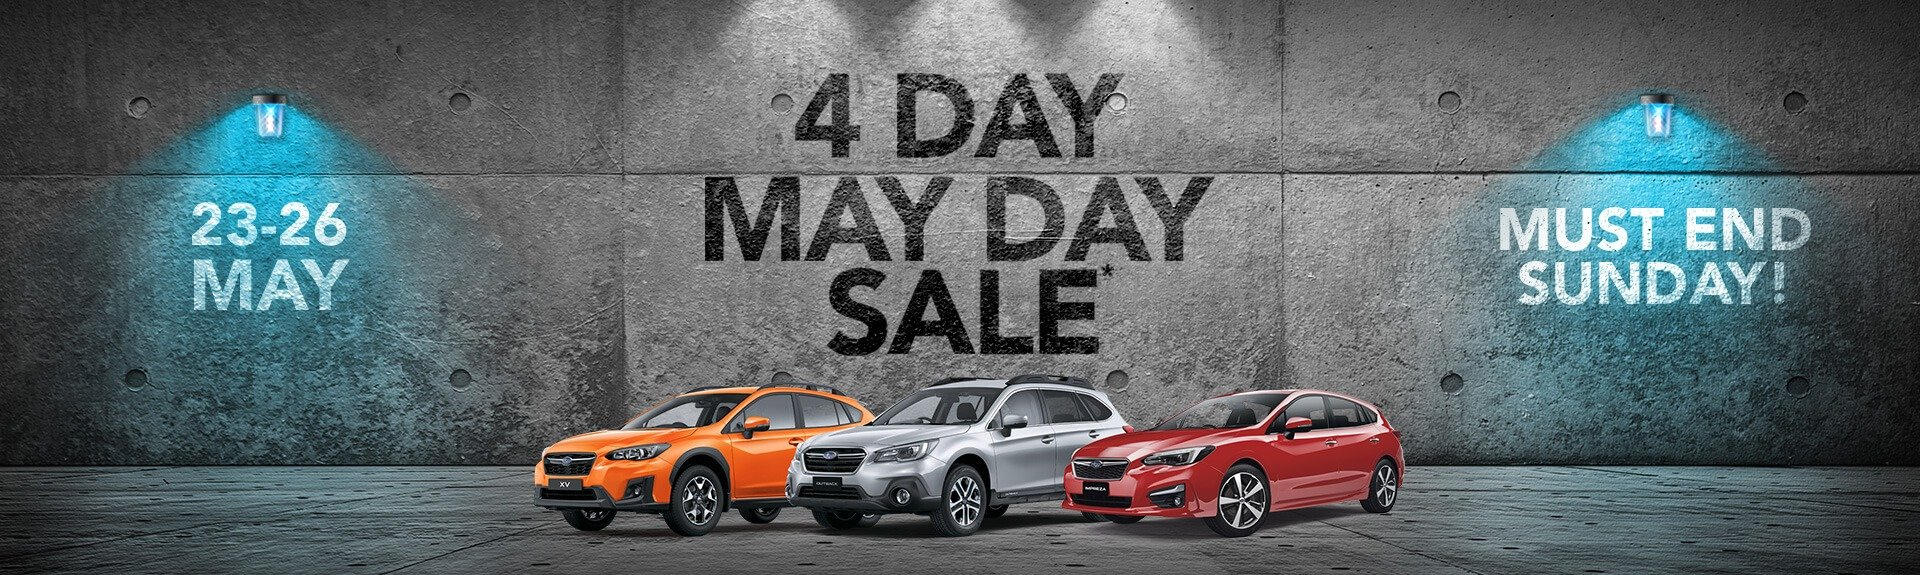 4 Day May Day Sale